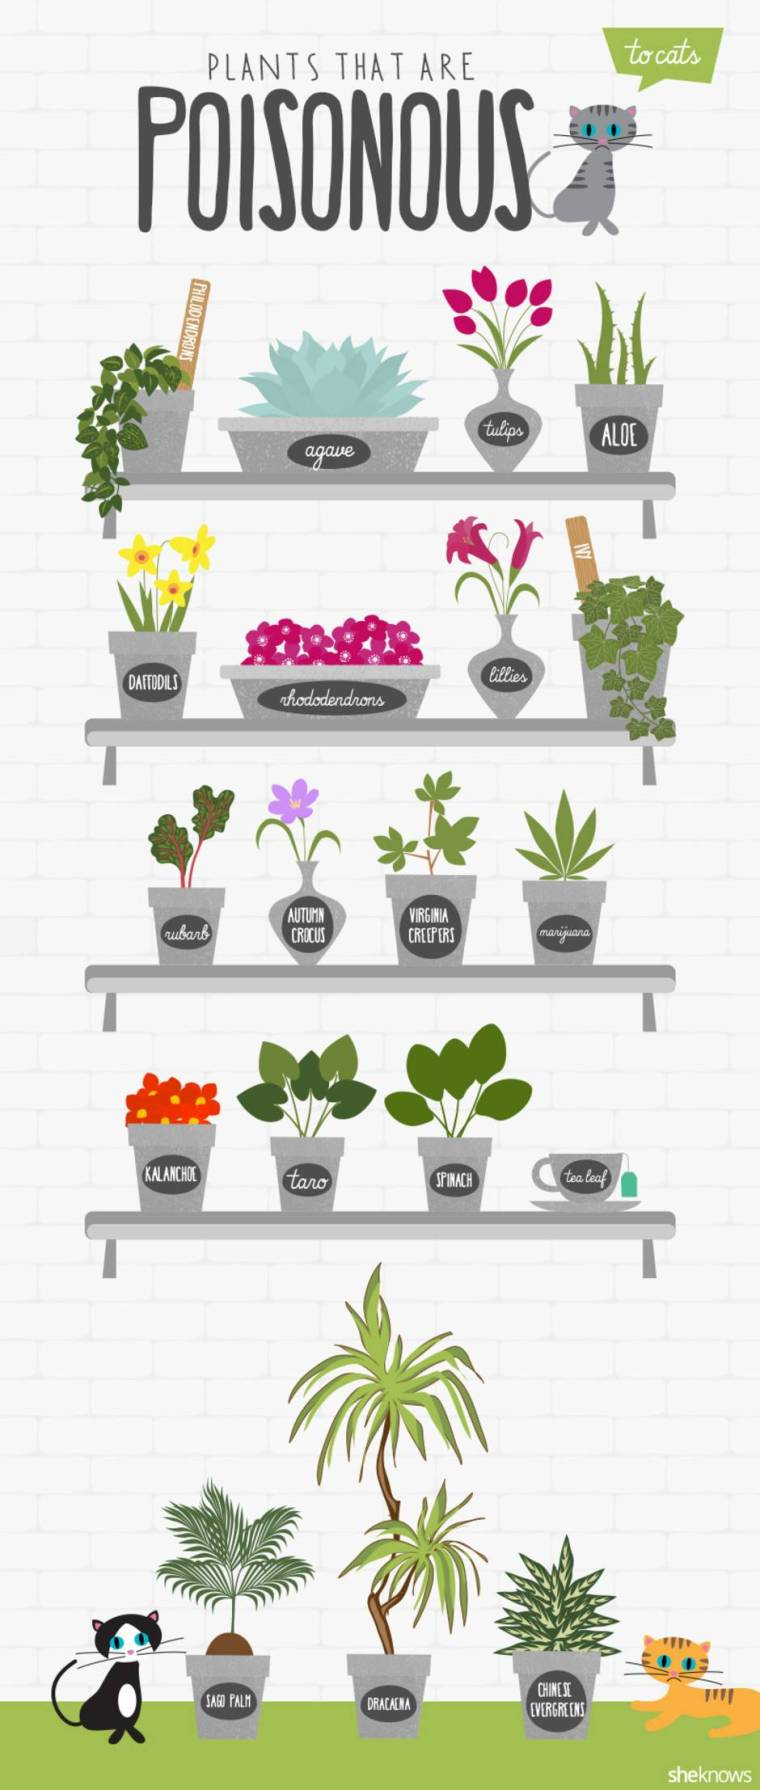 plants-poisonous-to-cats_q0b0cy